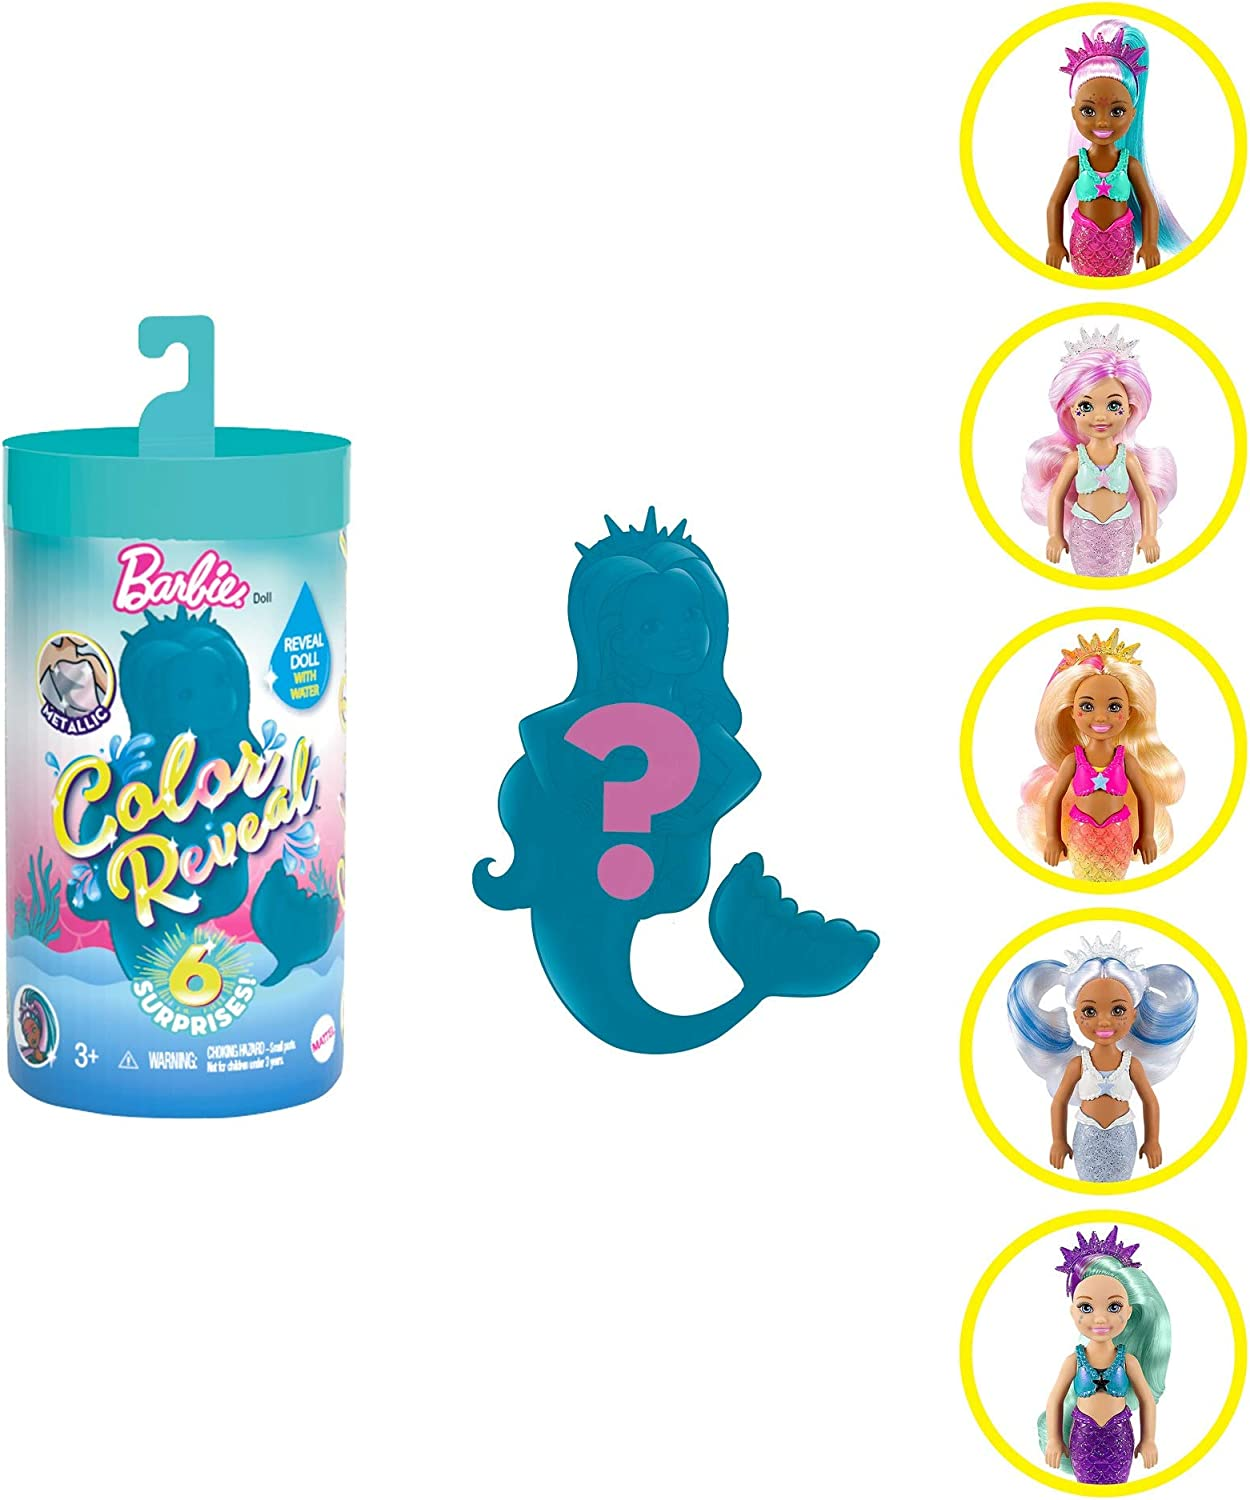 Barbie Color Reveal Chelsea Mermaid Doll with 6 Surprises 3 Mystery Bags Contain a Snap-On Bodice, Crown & Fin Comb; Mermaid-Themed; Gift for Kids 3 Years & Older